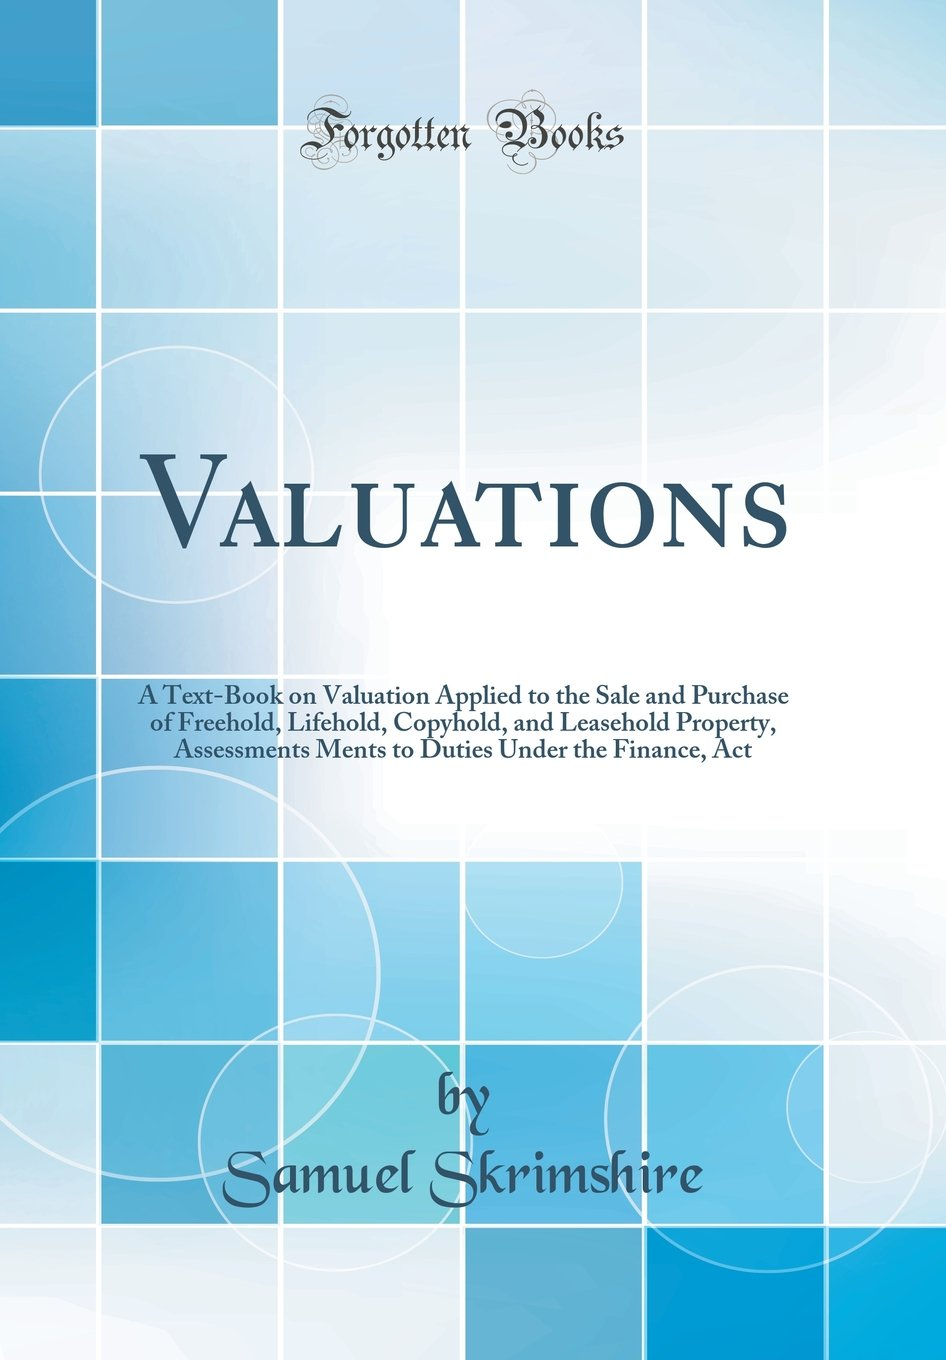 Valuations: A Text-Book on Valuation Applied to the Sale and Purchase of Freehold, Lifehold, Copyhold, and Leasehold Property, Assessments Ments to Duties Under the Finance, ACT (Classic Reprint) ebook